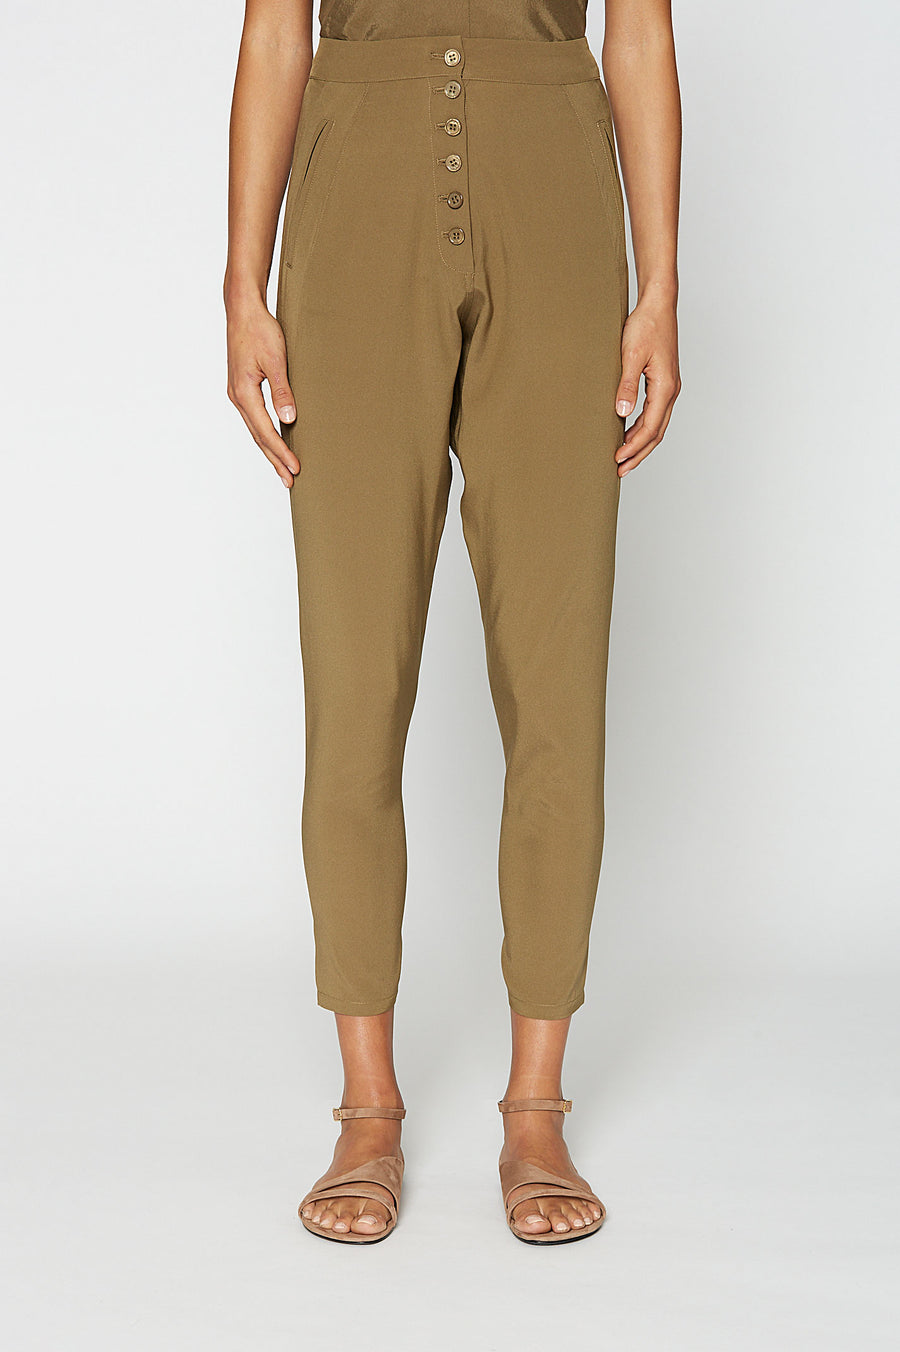 SILK LOW RISE BUTTON PANT, Center Buttons, Low Rise, Color Jungle